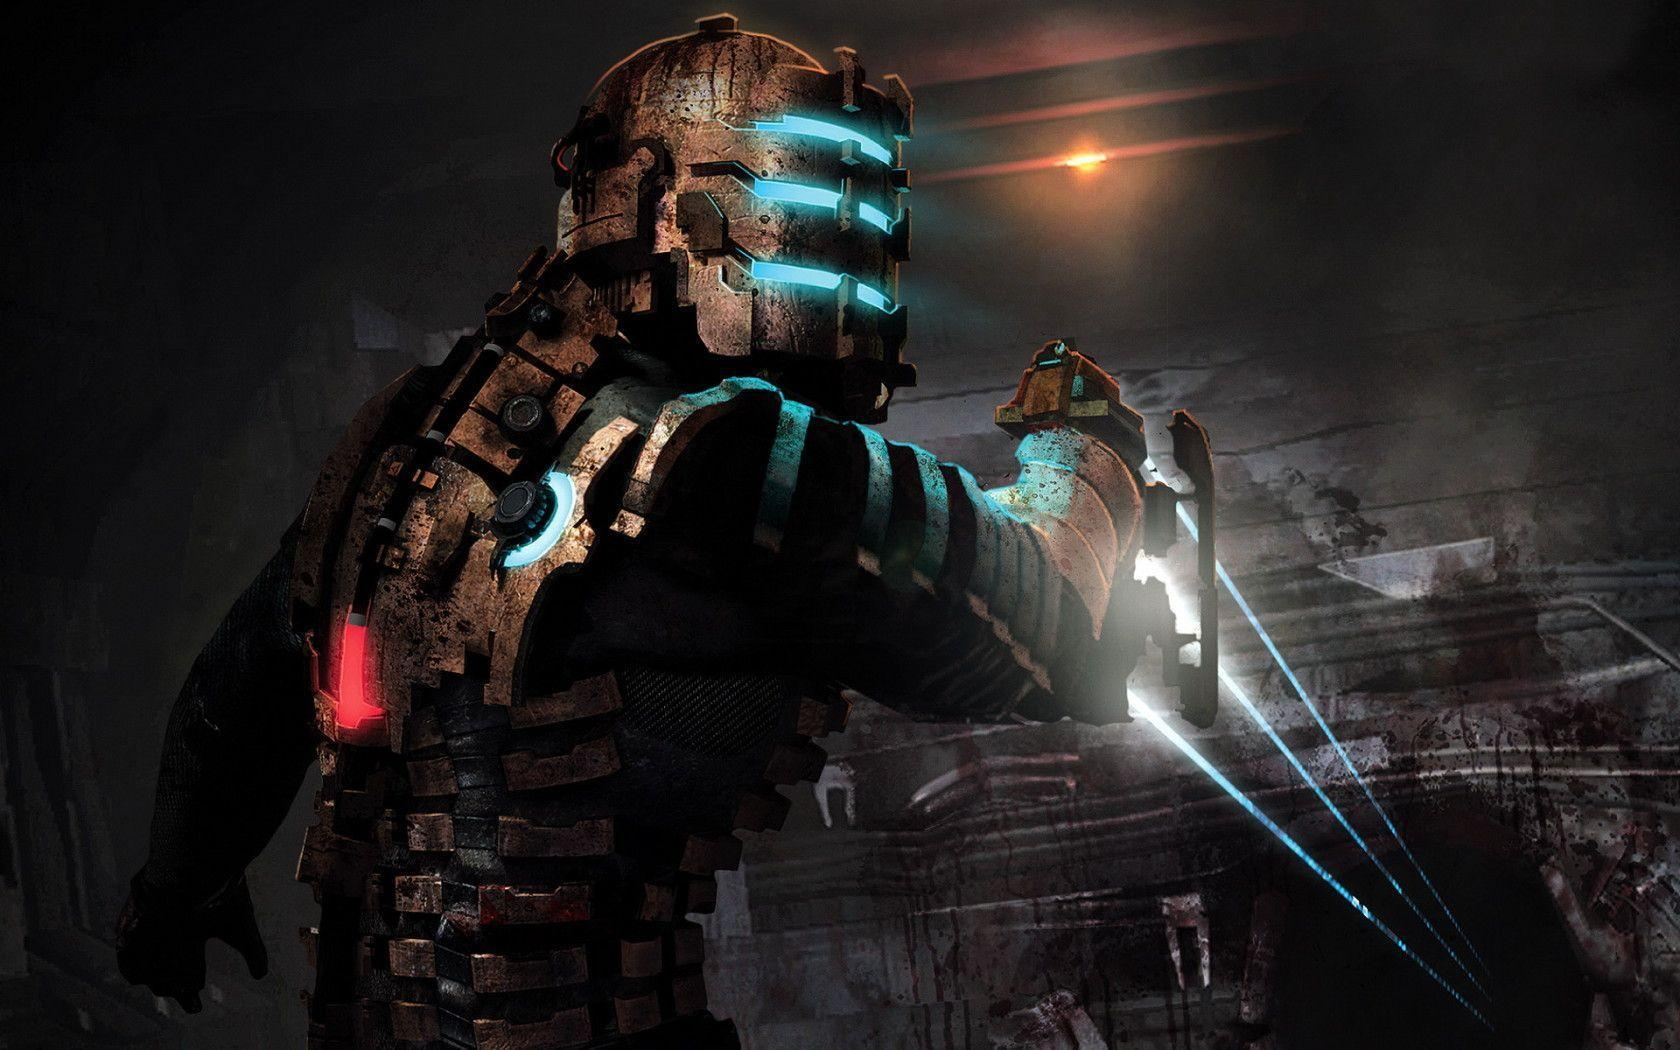 Dead Space Wallpapers - Wallpaper Cave